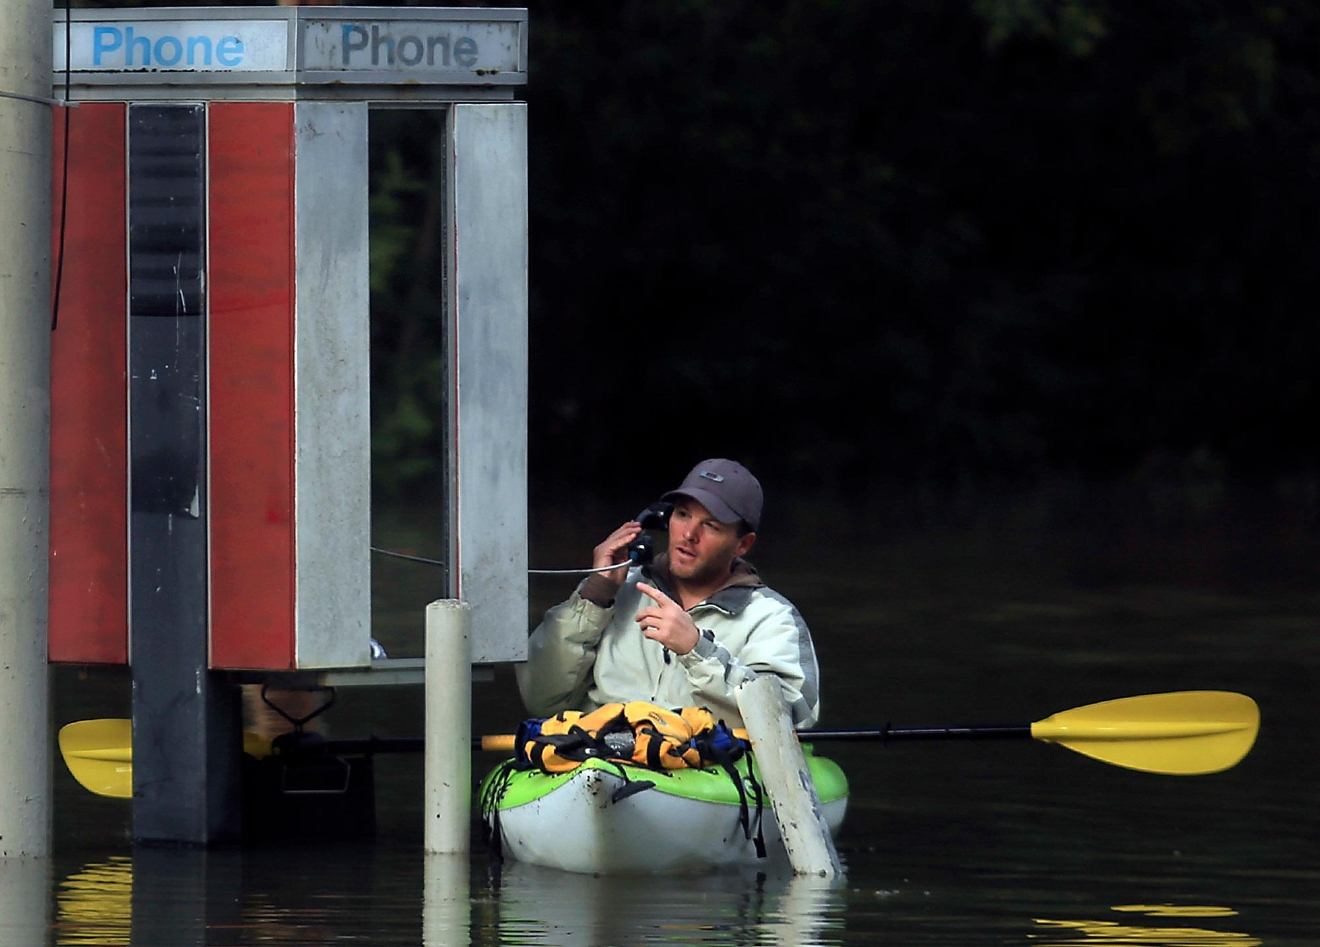 With Russian River waters rising, Dustin Coupe of Guerneville talks with an operator via phone booth on River Road in Guerneville, Calif., Wednesday. Jan. 11, 2017. Dozens of Northern California residents have been rescued by boats and firetrucks from flooded homes near Hollister, California as a drought-busting series of storms moved out of the region. Days of rain and snow have toppled trees and forced people out of water-logged homes.  (Kent Porter/The Press Democrat via AP)